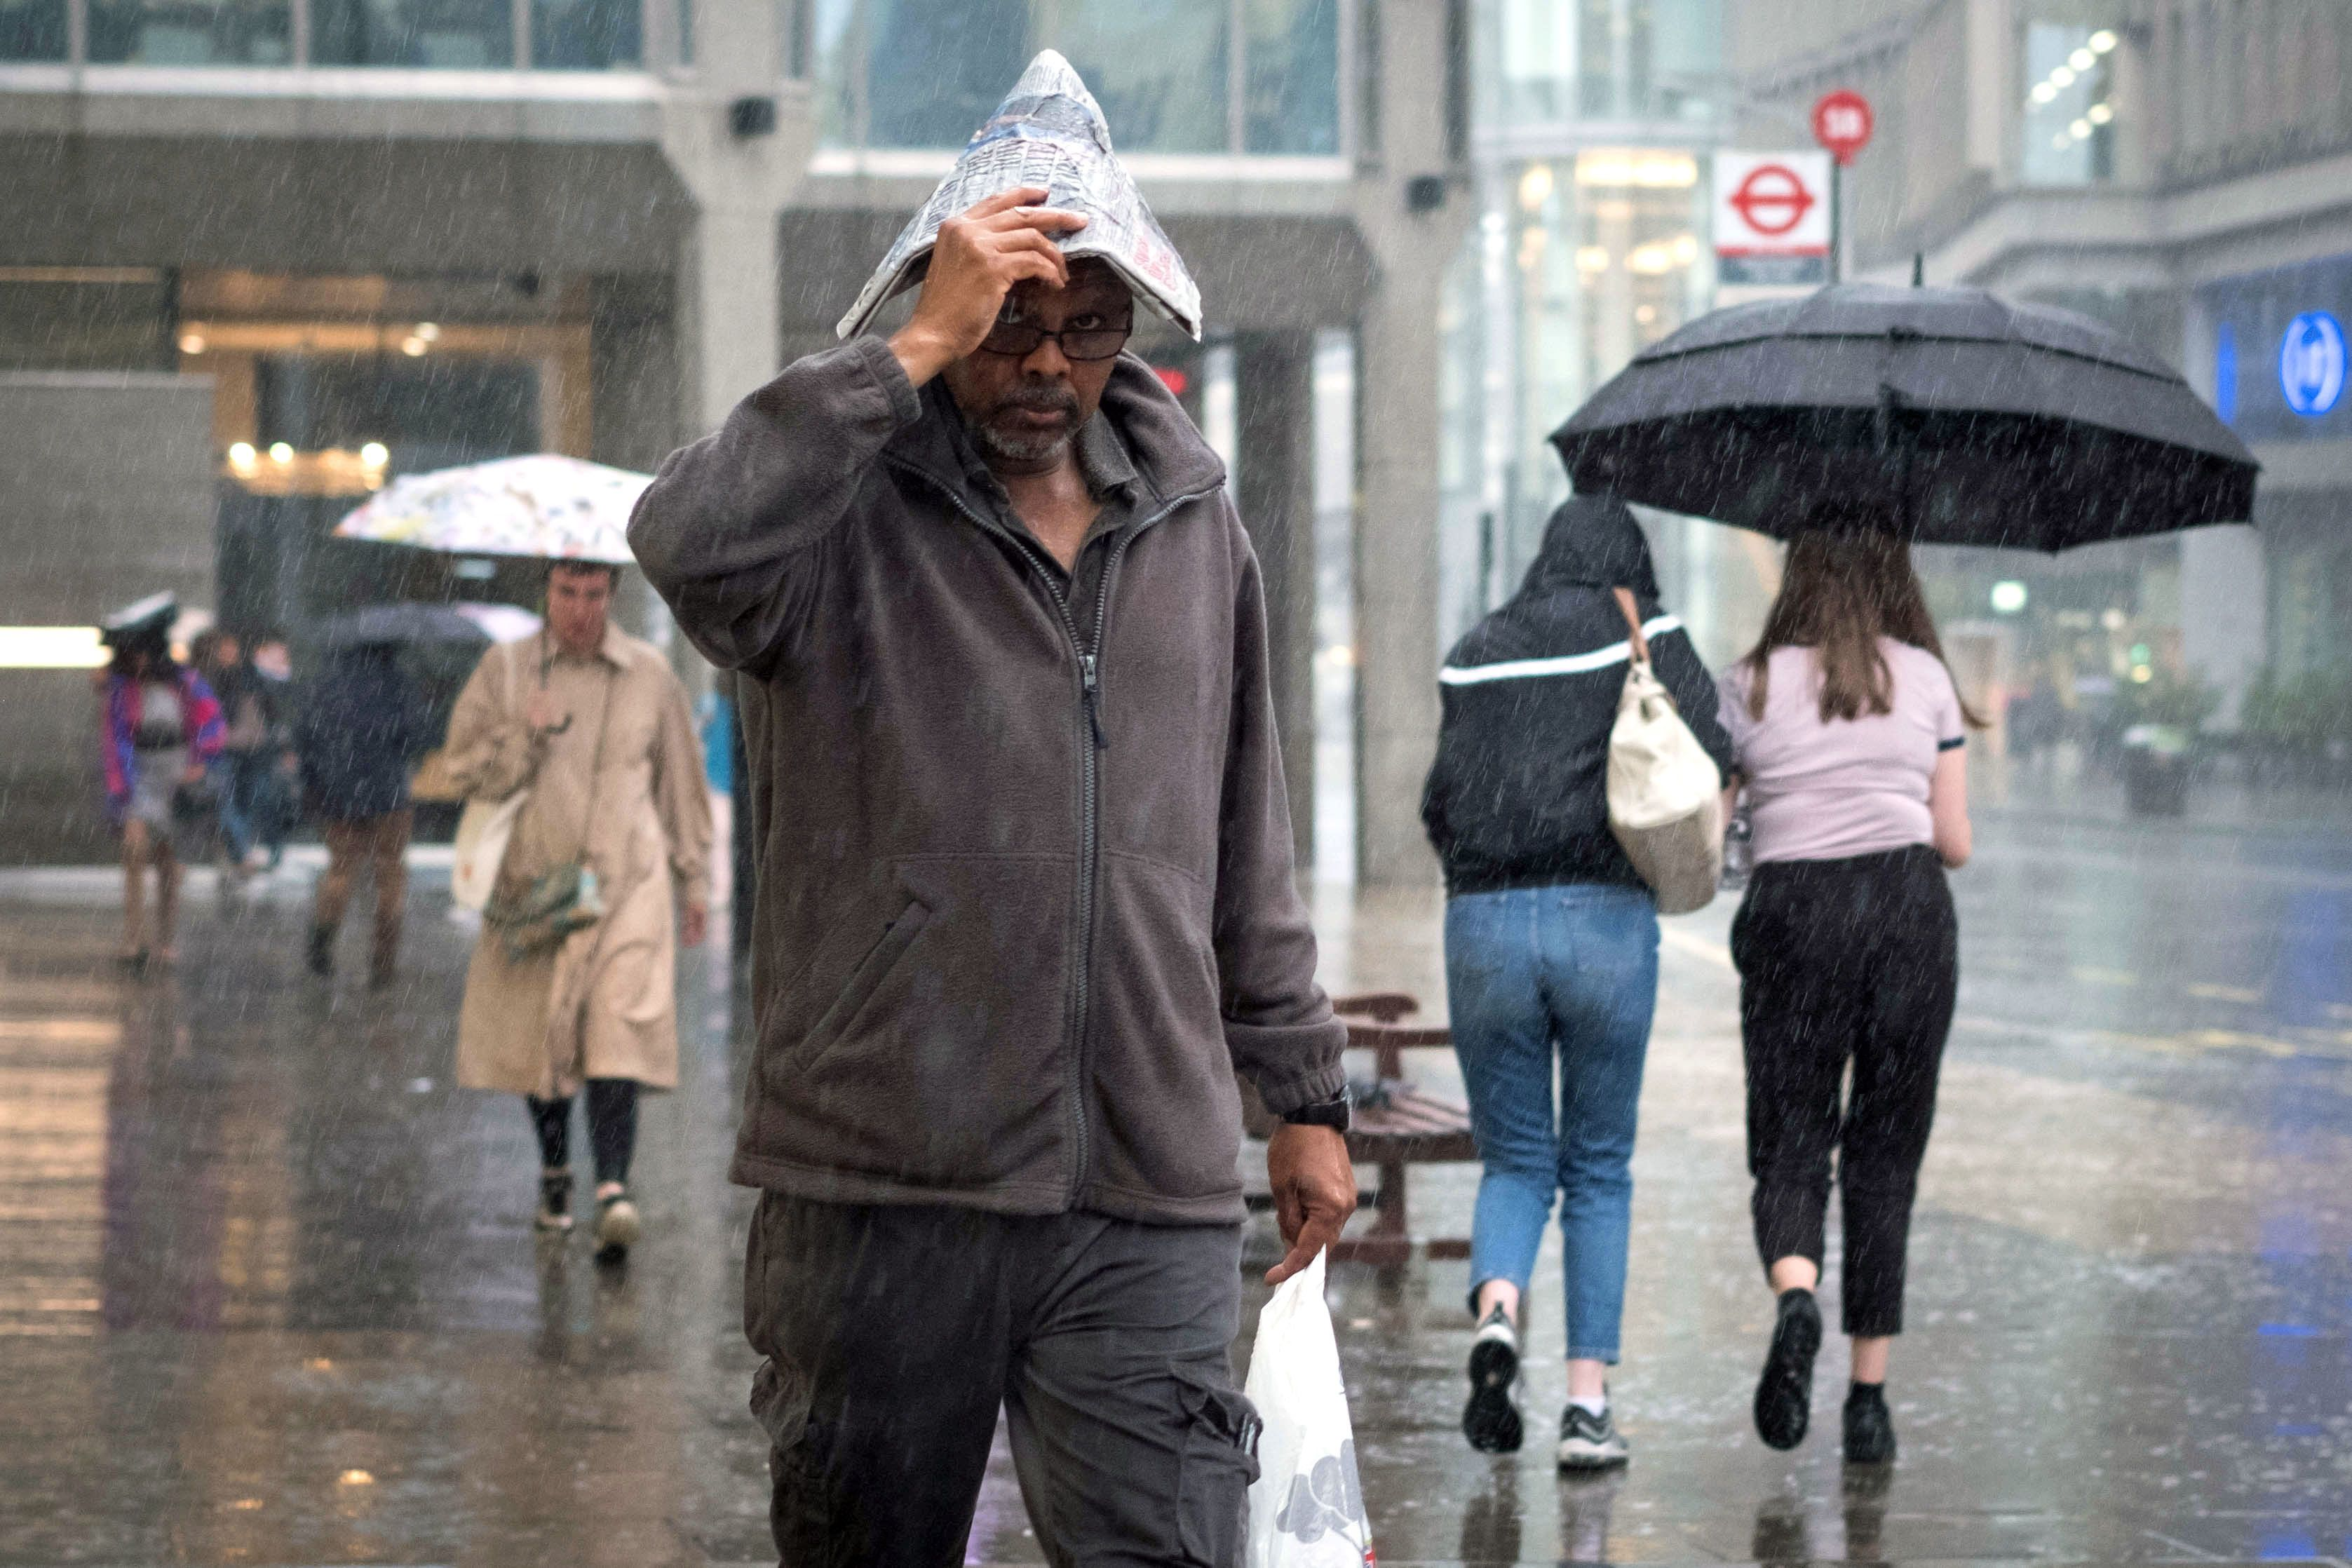 Storm Ernesto Set To Unleash Heavy Rain And Strong Winds This